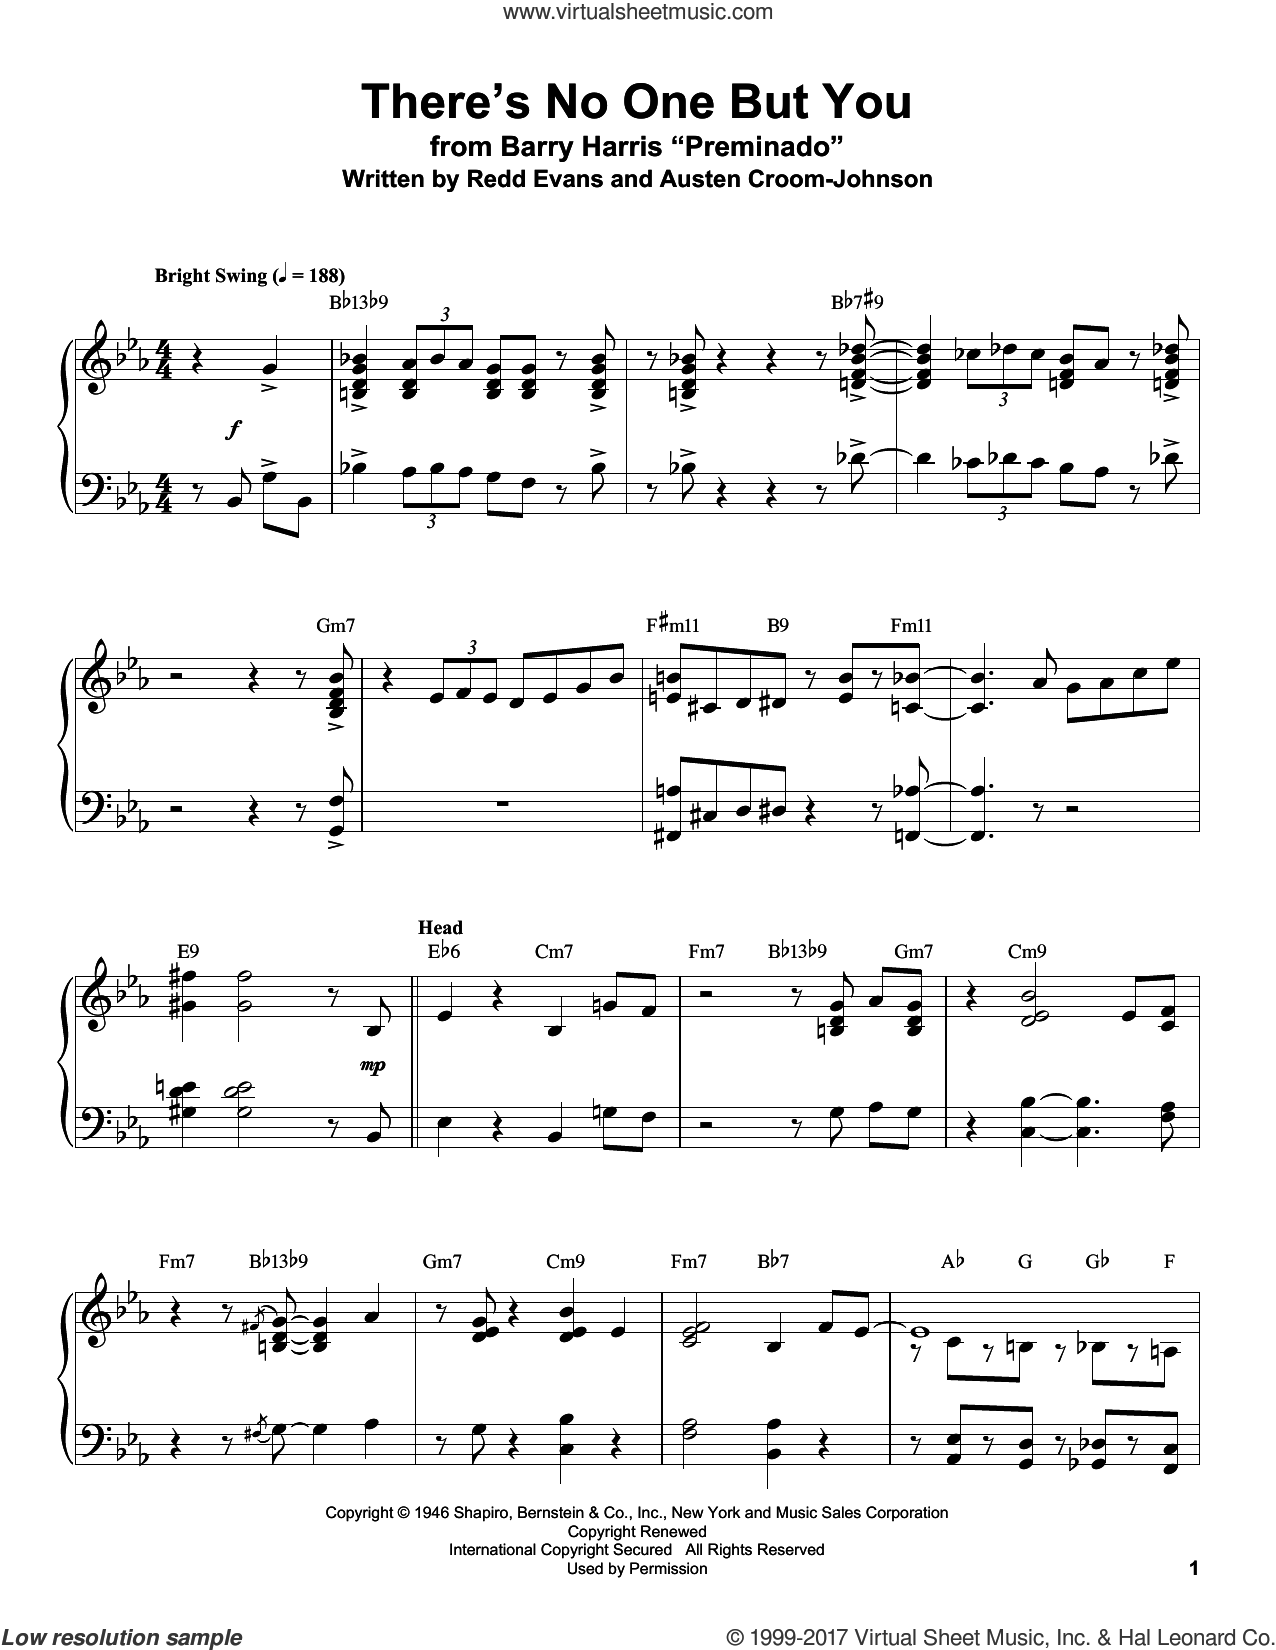 There's No One But You sheet music for piano solo (transcription) by Redd Evans. Score Image Preview.